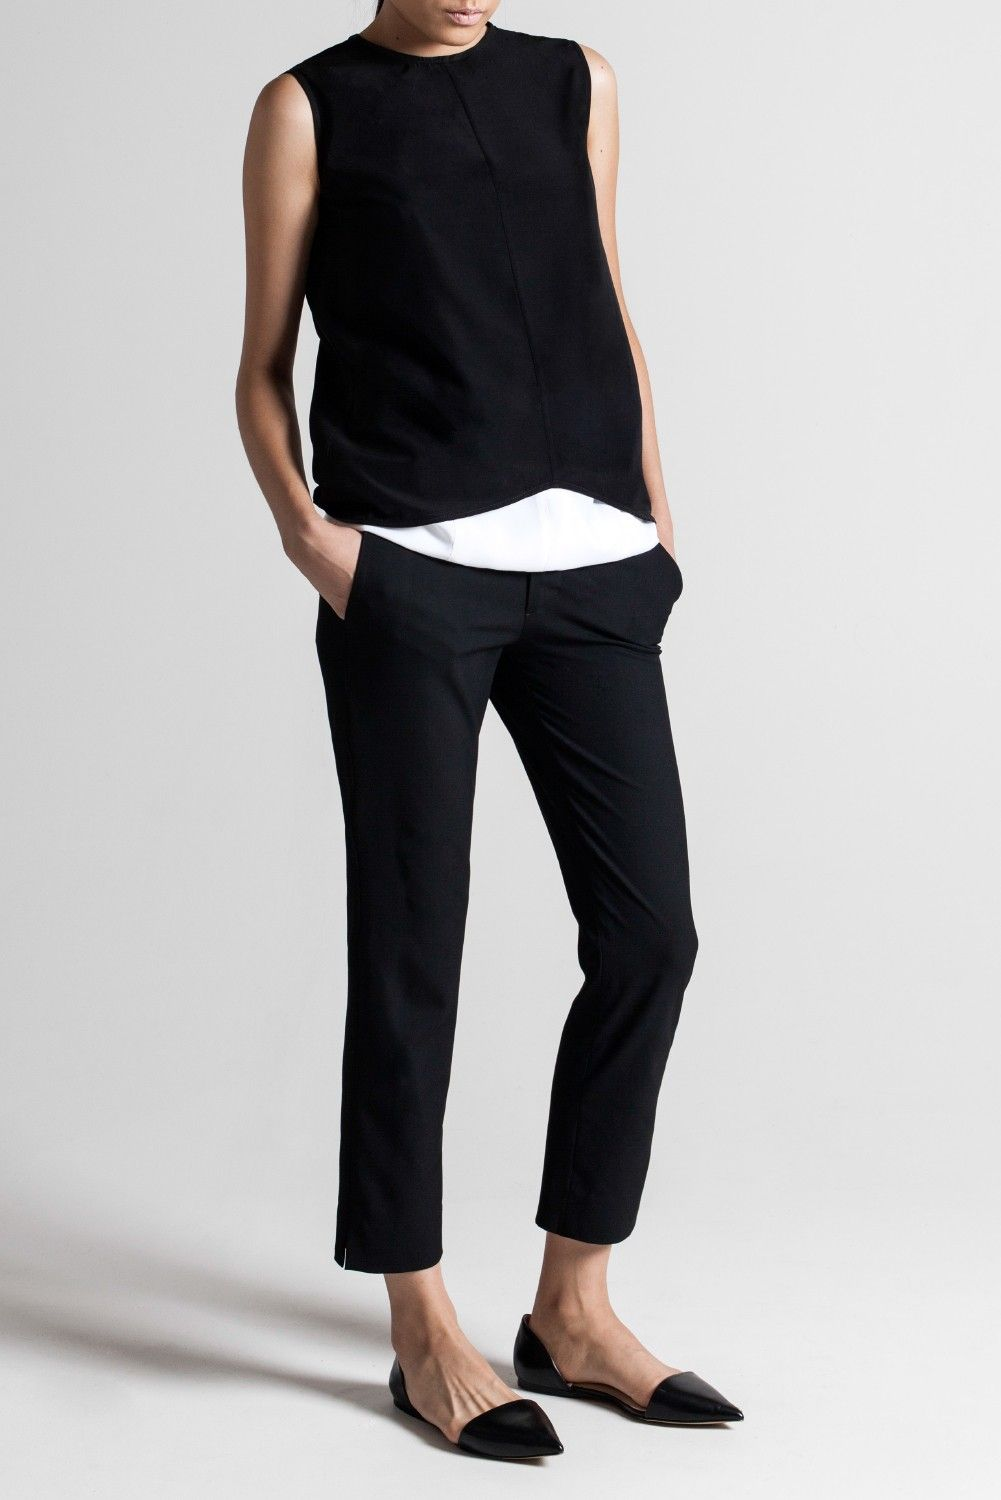 253edae4cef232 Sleeveless Top- great look, classic, very Audrey Hepburn. I could have  those pants in every color.